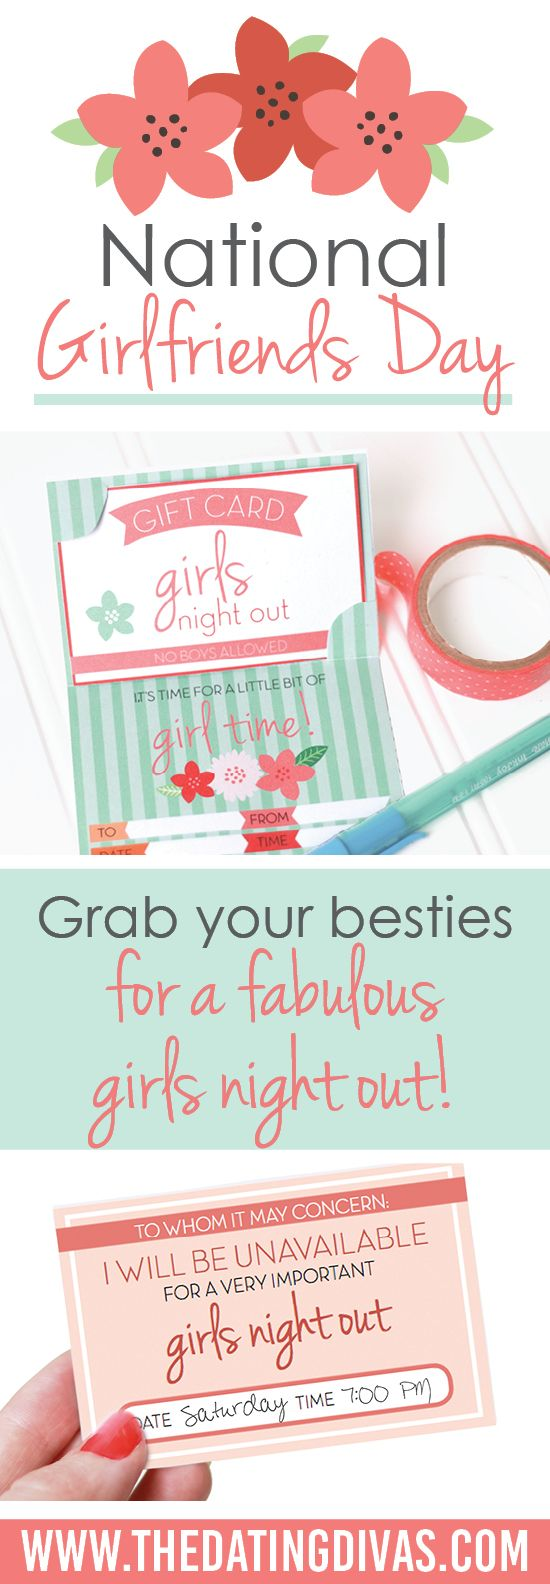 I had no idea National Girlfriends Day was a real thing!! Time for a girls night! Printables designed by www.la-sync.com www.TheDatingDivas.com